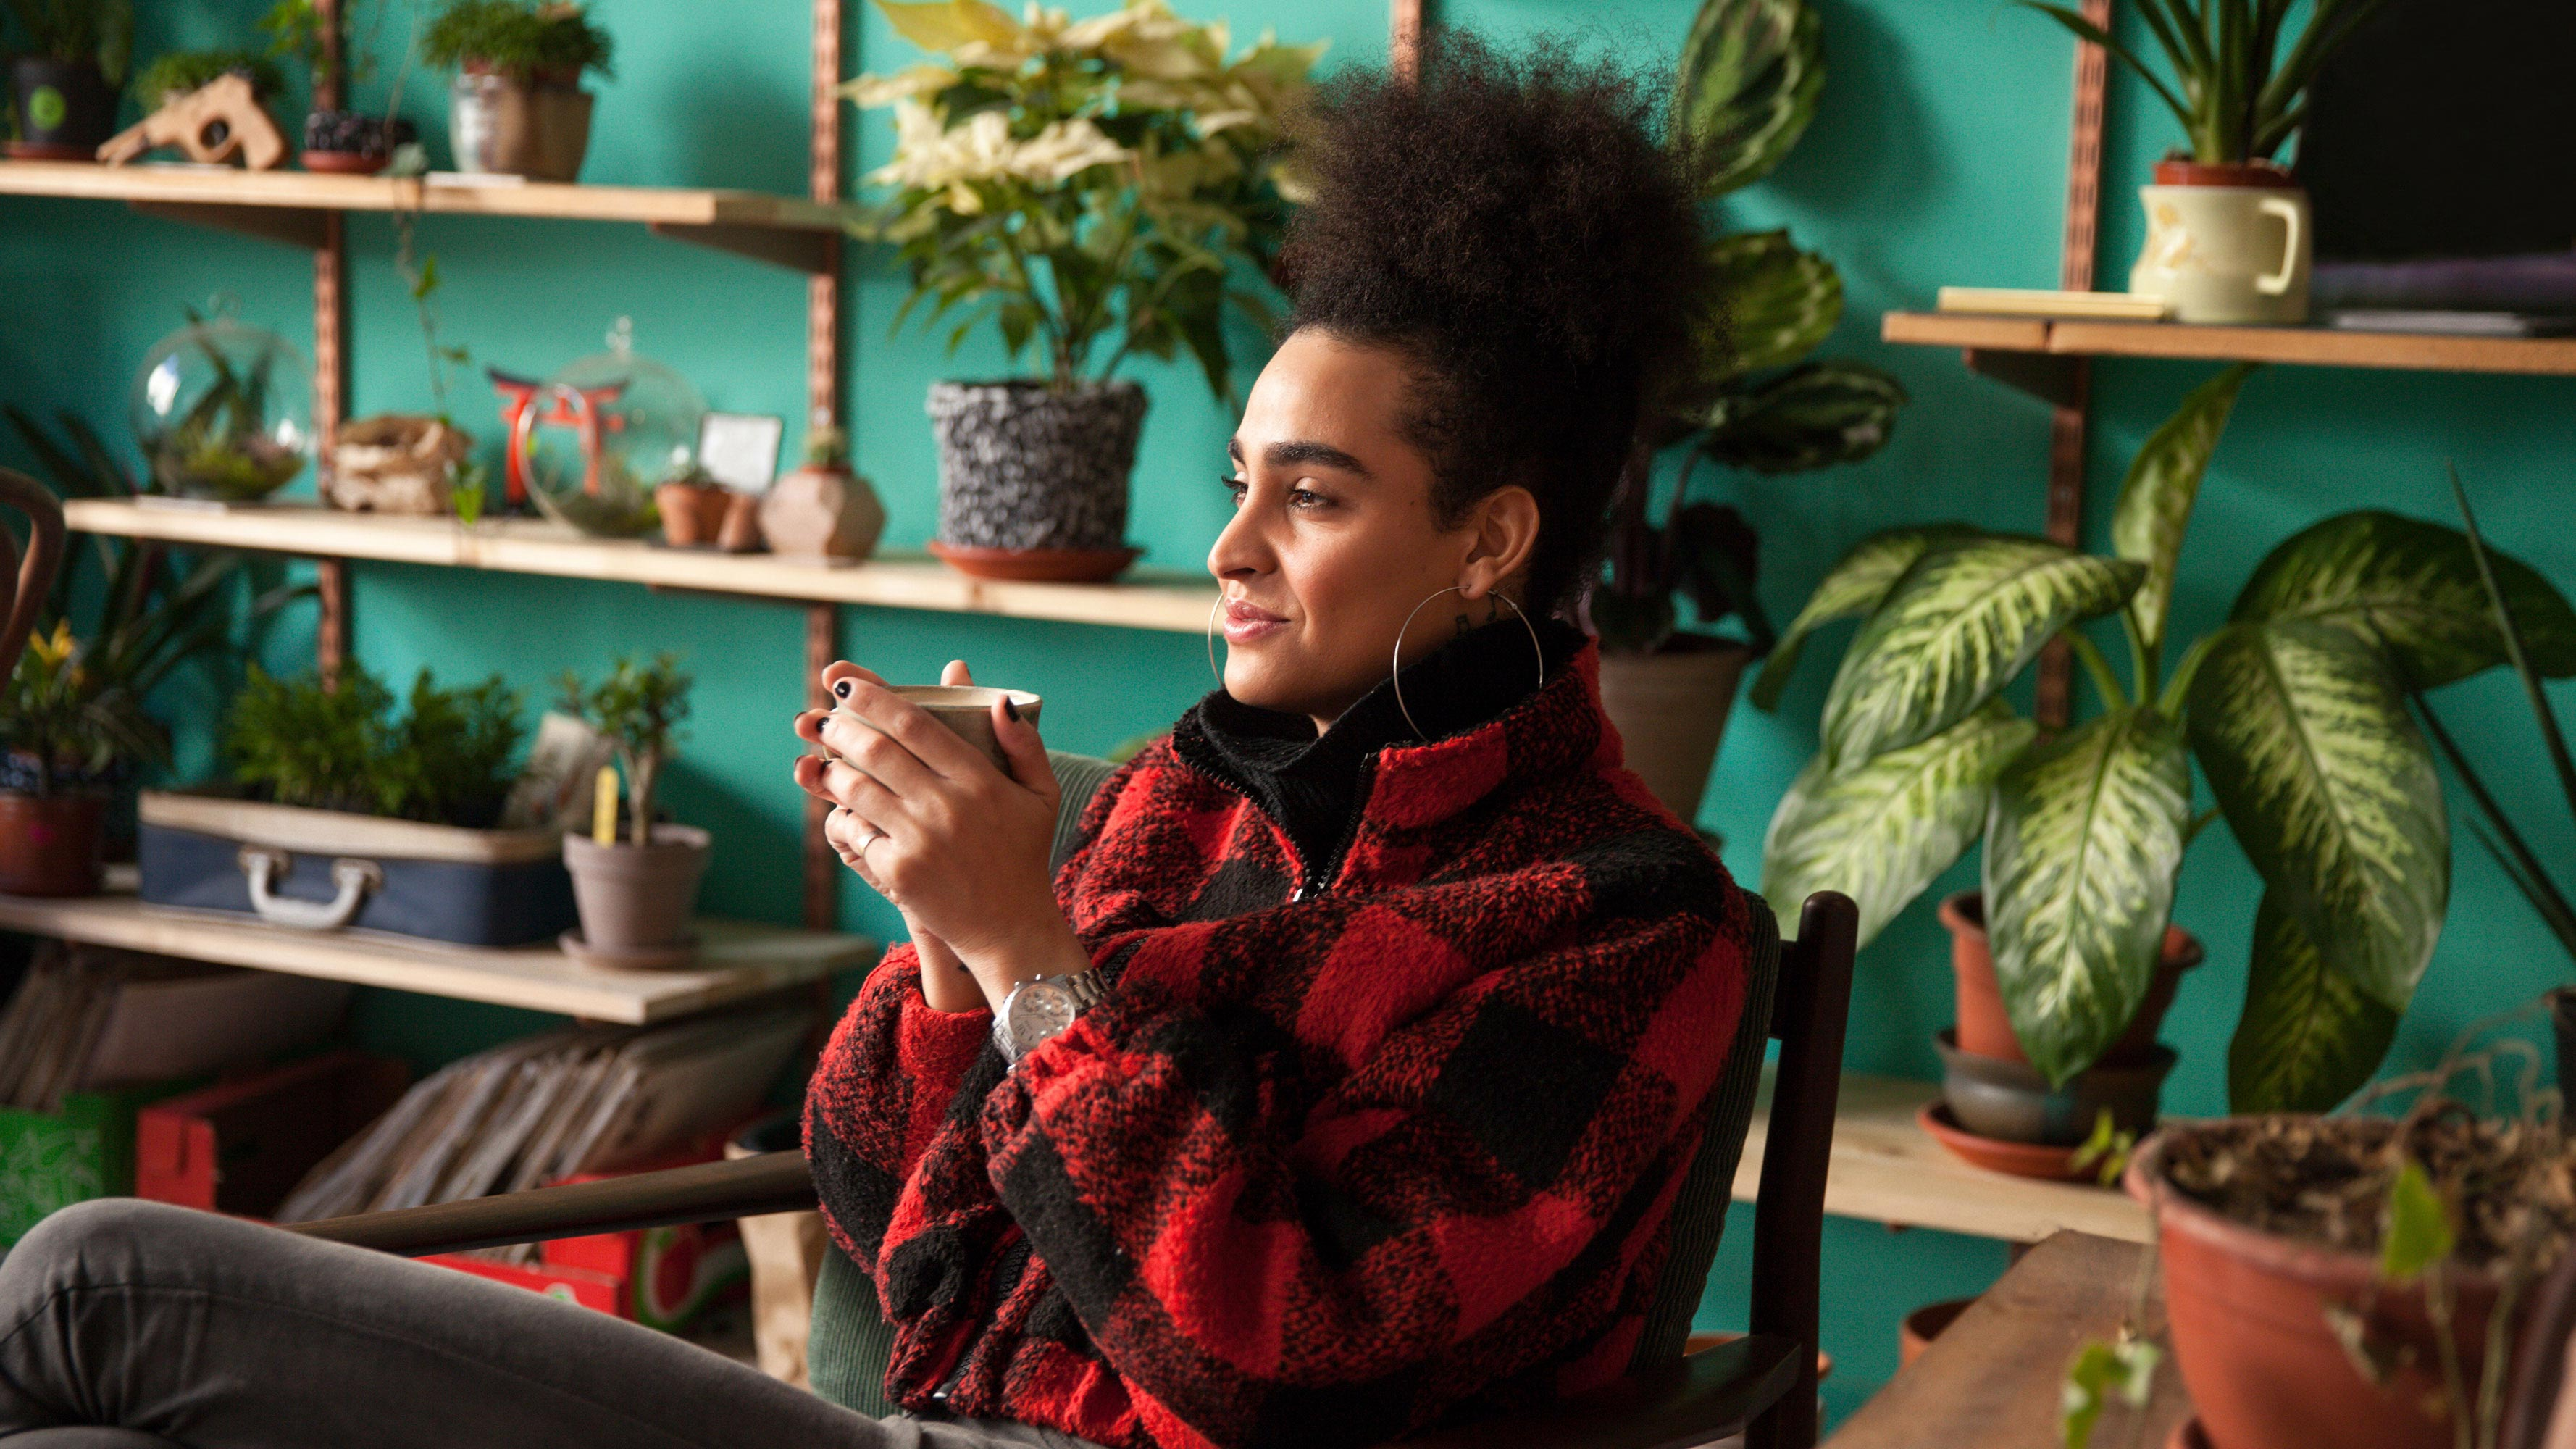 A woman, wearing a red and black sweater, holds a cup of tea with both hands while relaxing in her plant-filled living room.